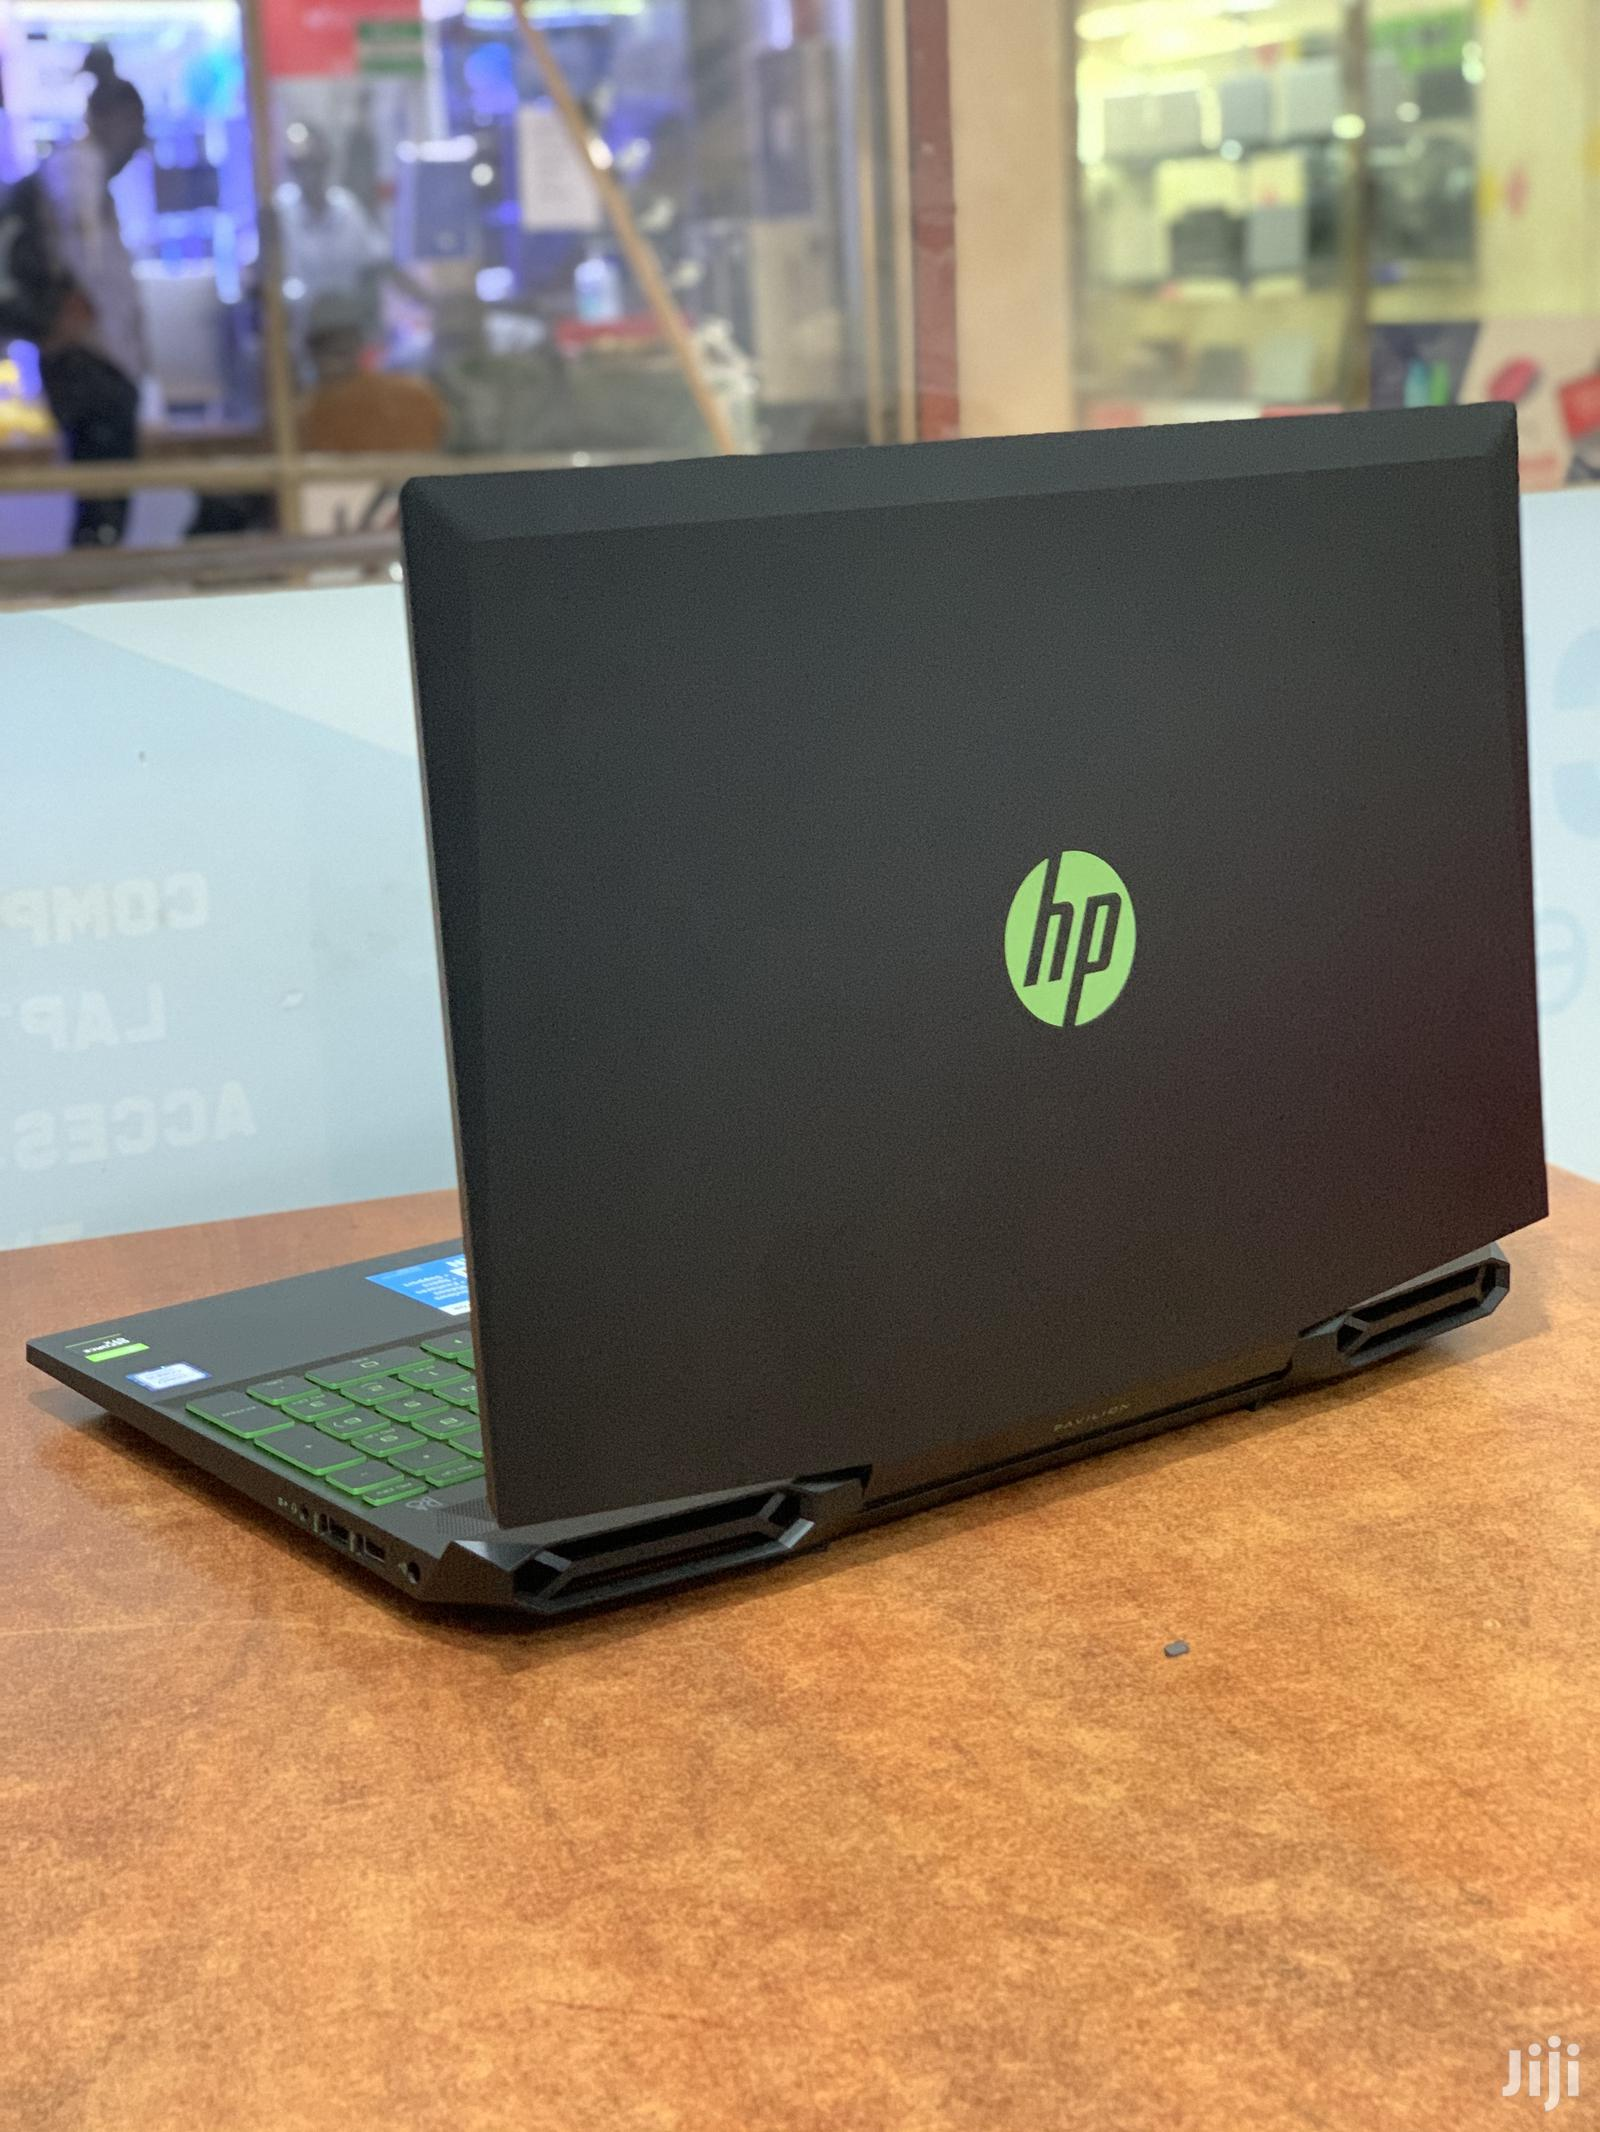 New Laptop HP Pavilion 15 16GB Intel Core I5 SSHD (Hybrid) 1T | Laptops & Computers for sale in Kampala, Central Region, Uganda